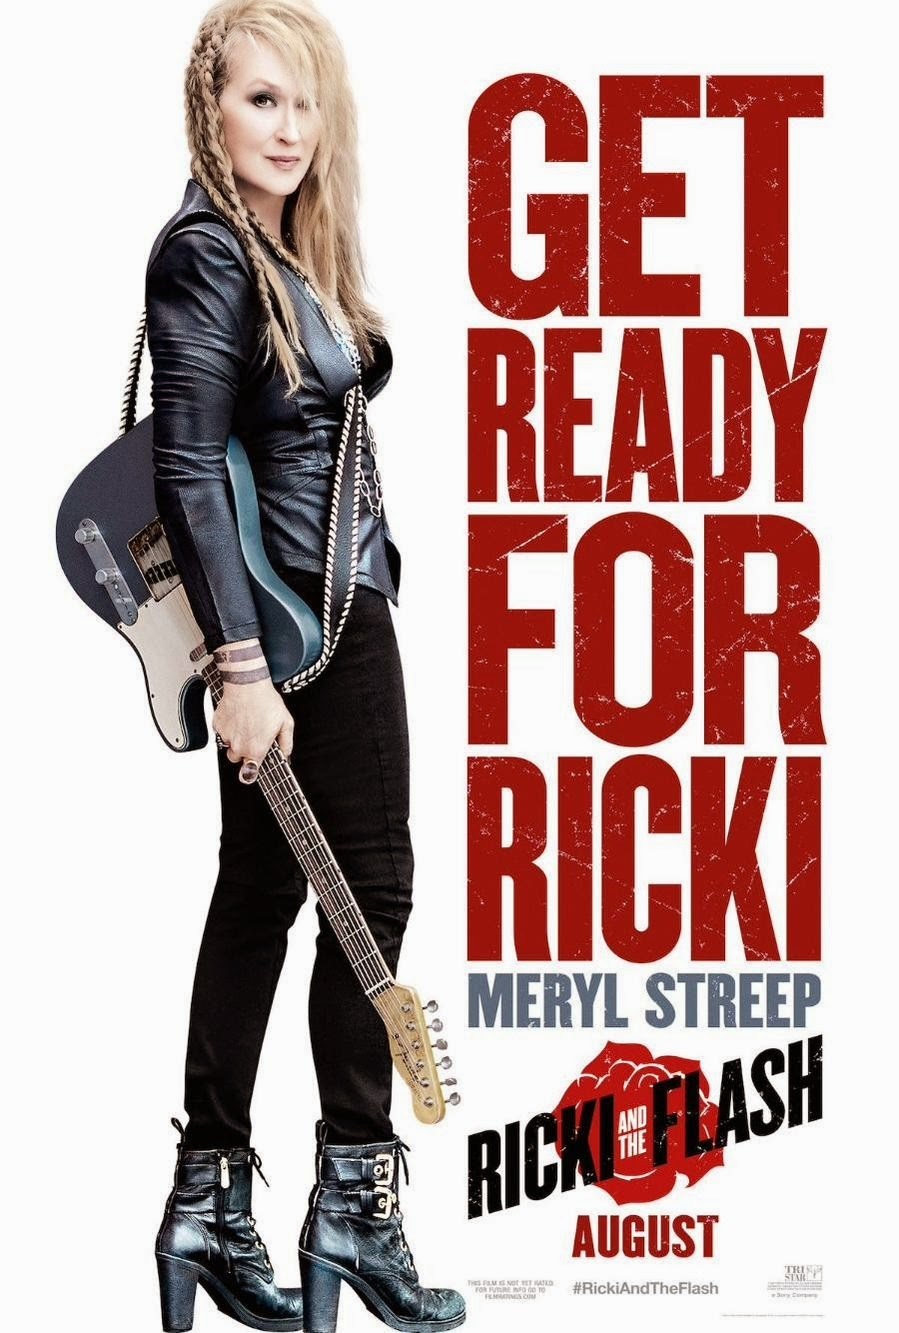 Ricki_And_The_Flash_Official_Poster_JPosters